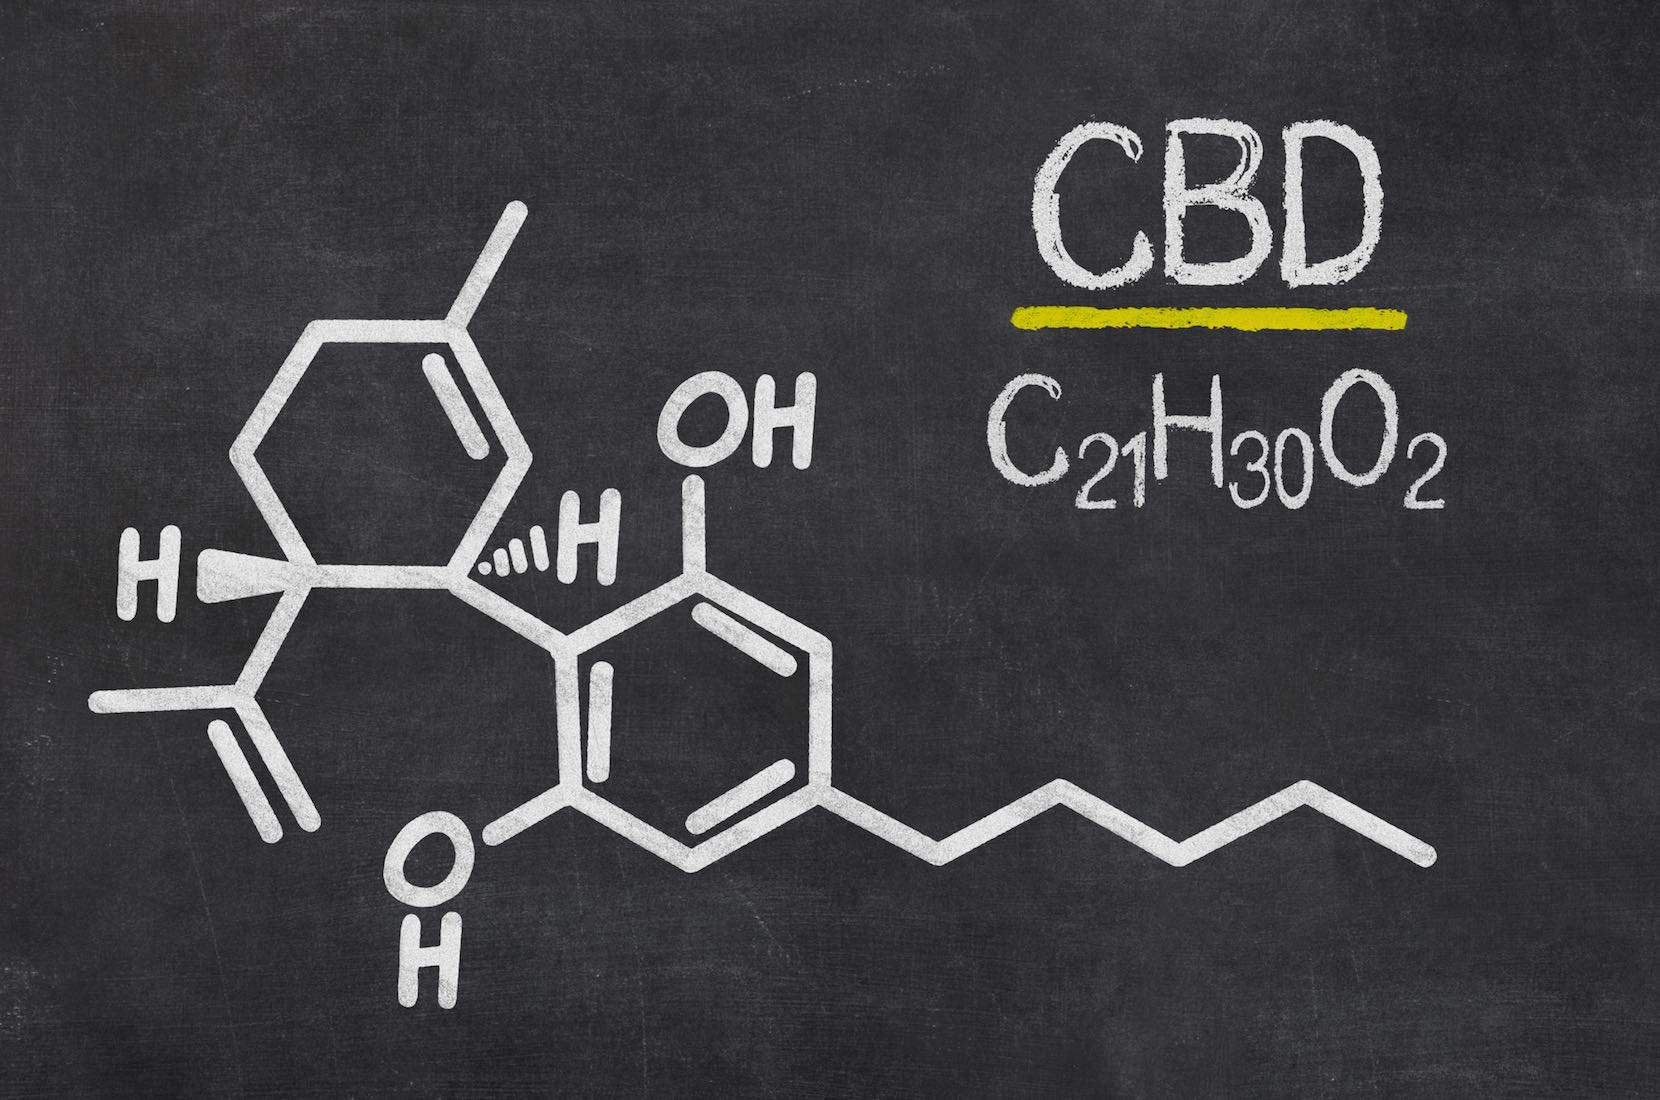 Frequently asked questions about CBD